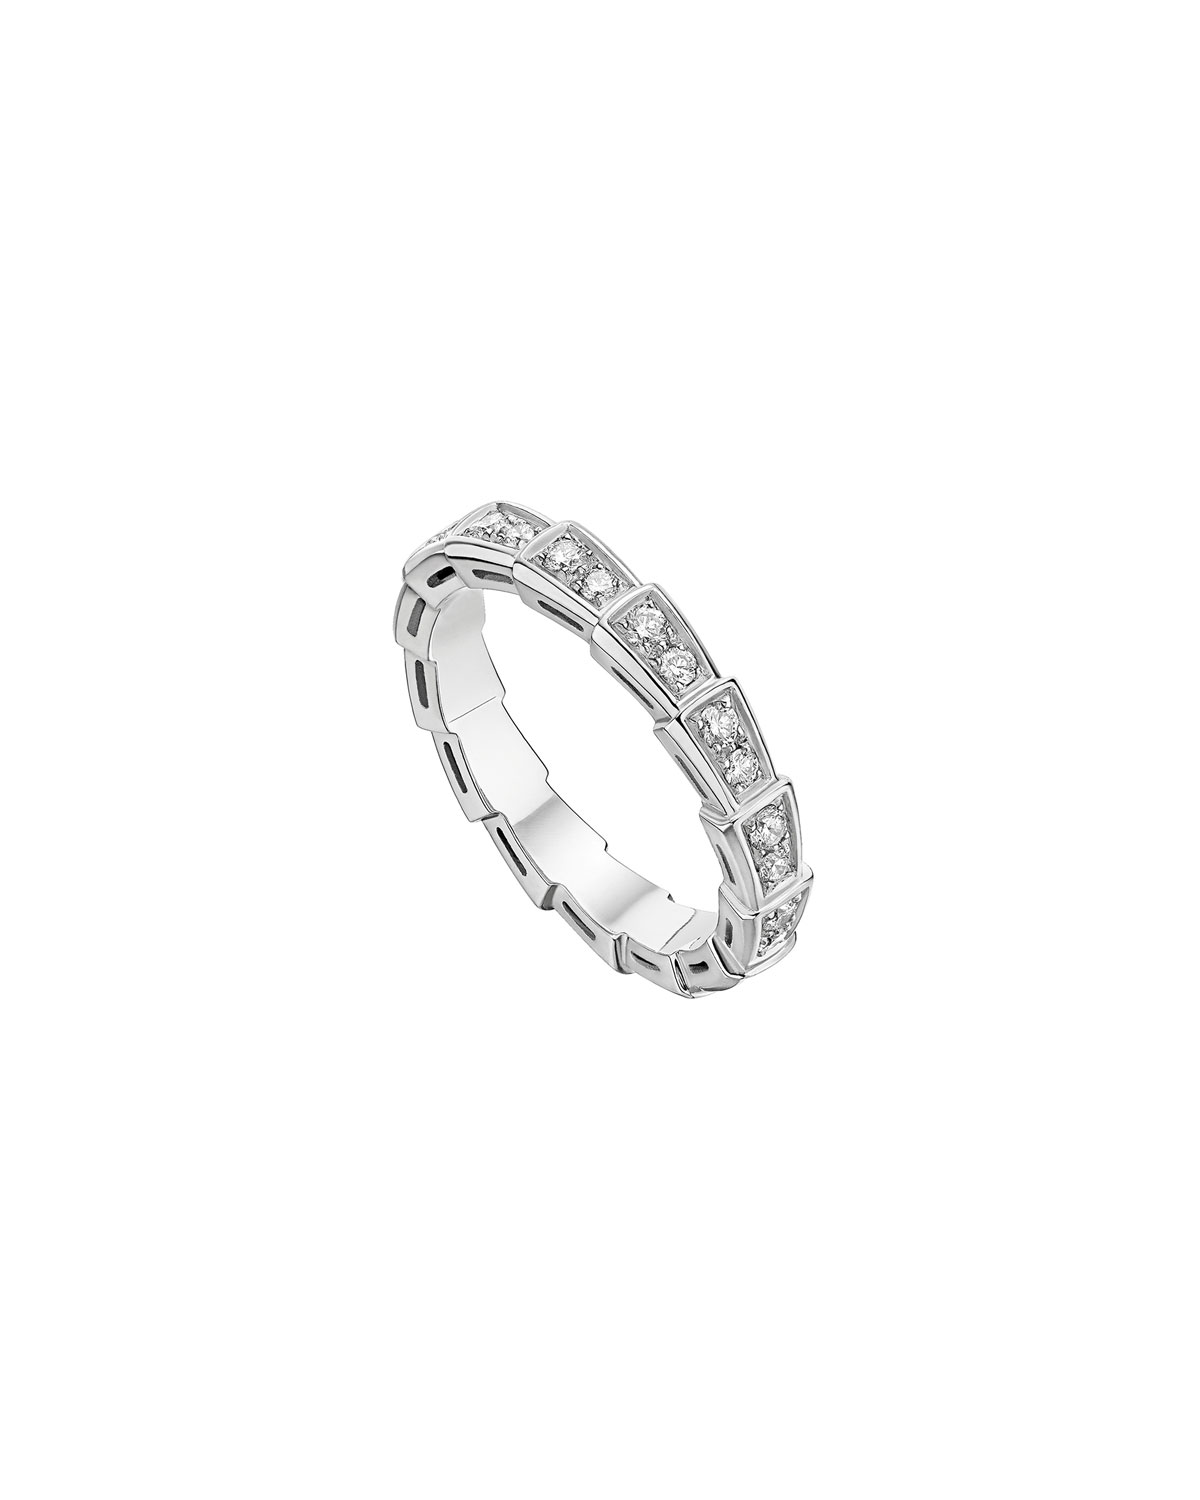 Serpenti Ring in 18k White Gold and Diamonds